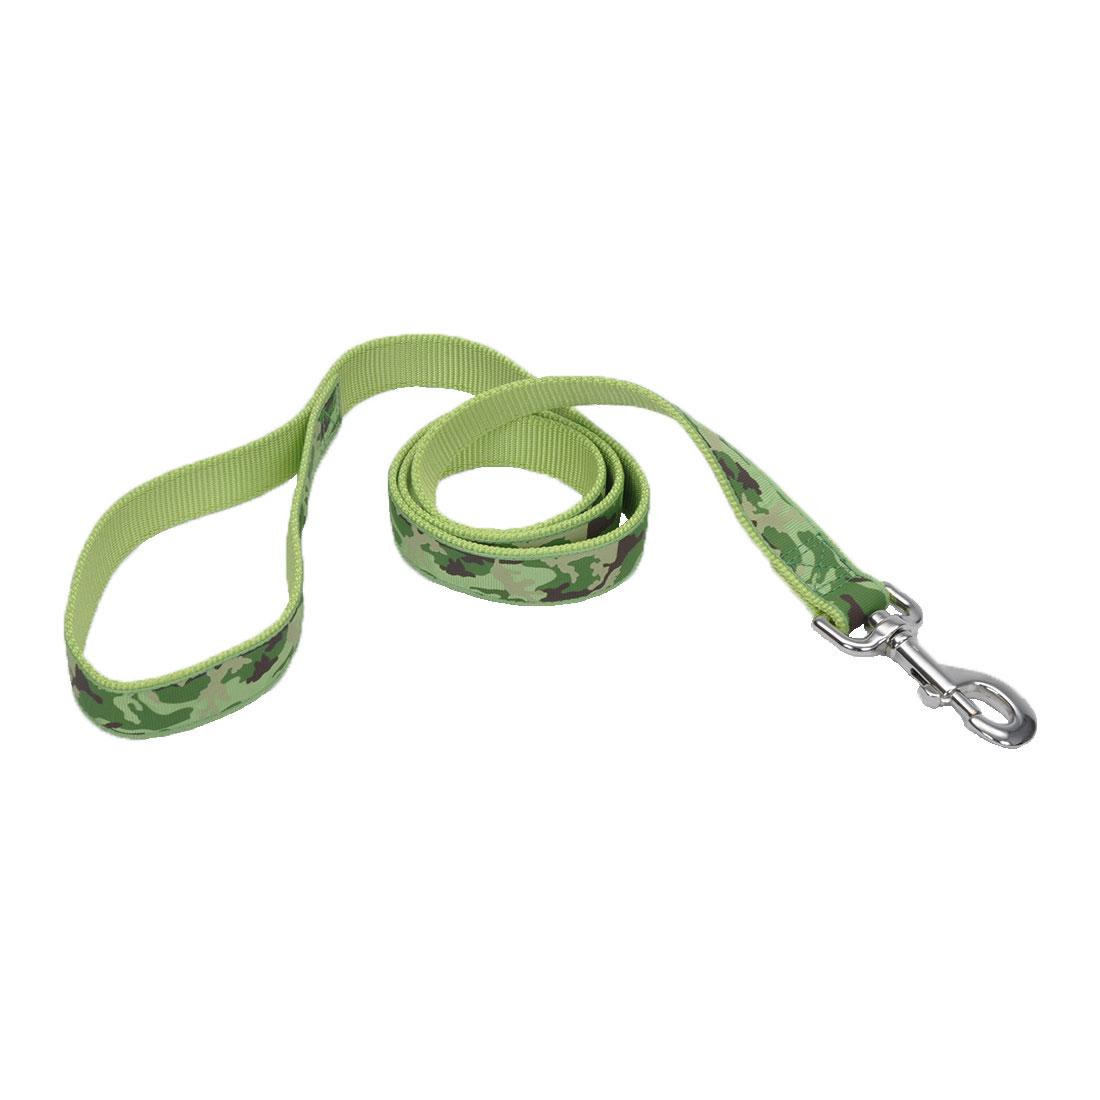 Ribbon Nylon Dog Leash, Lime Camouflage, 1-in x 4-ft